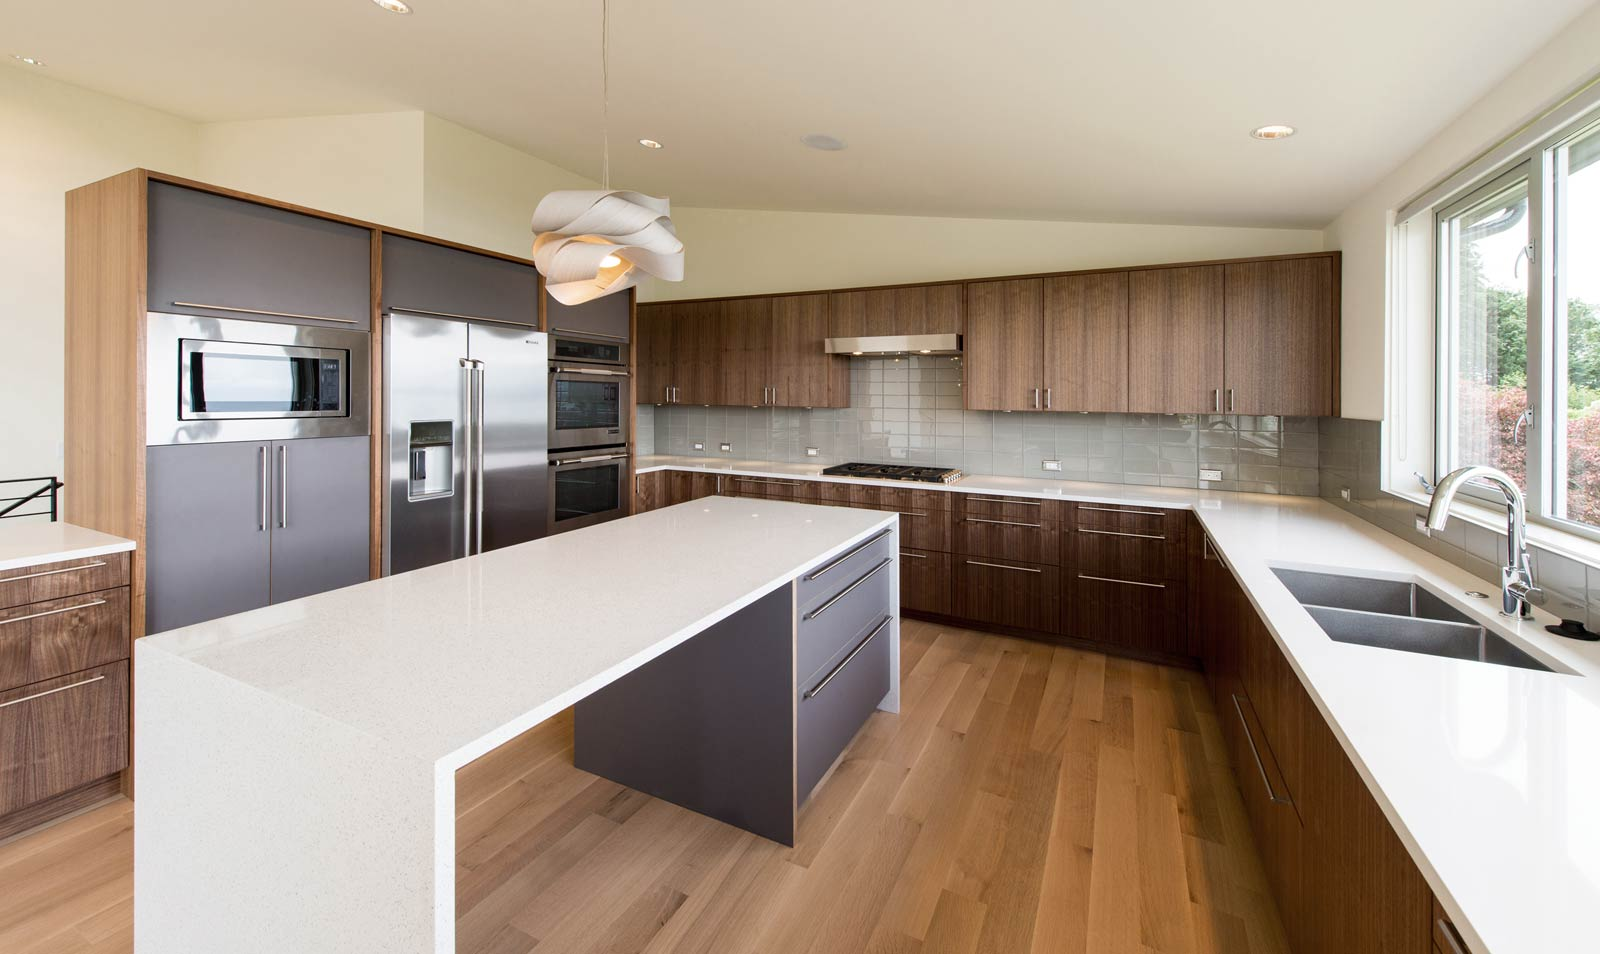 BUILD LLC Innis Arden North Kitchen 02#